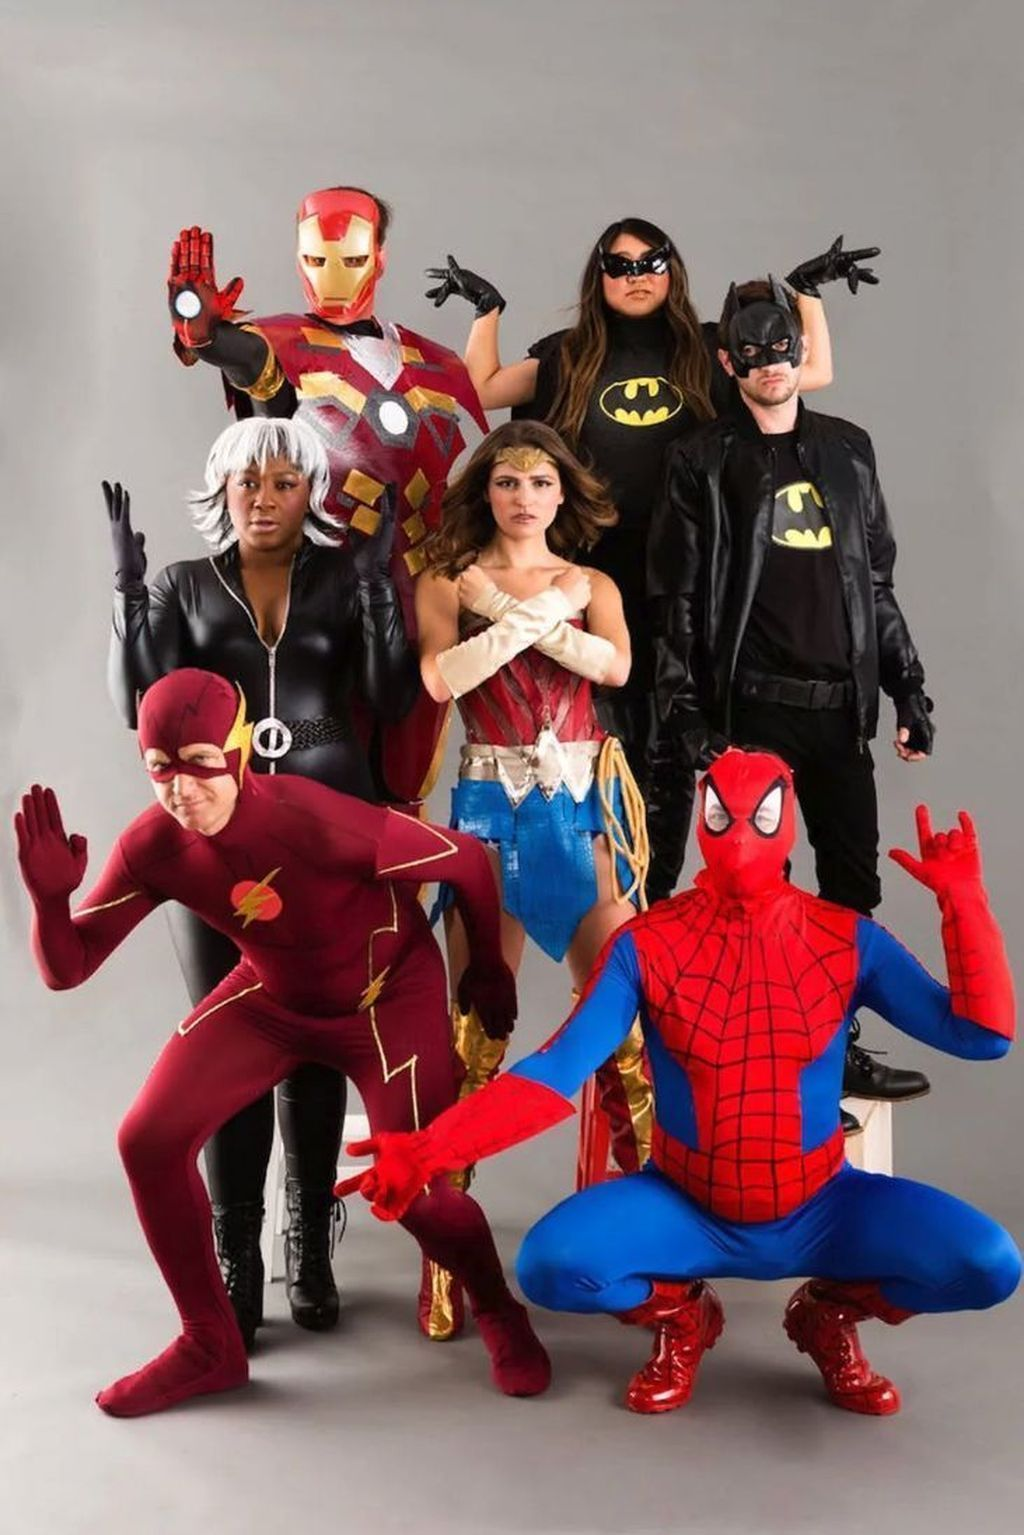 30+ Spooktacular DIY Group Halloween Costumes For Your